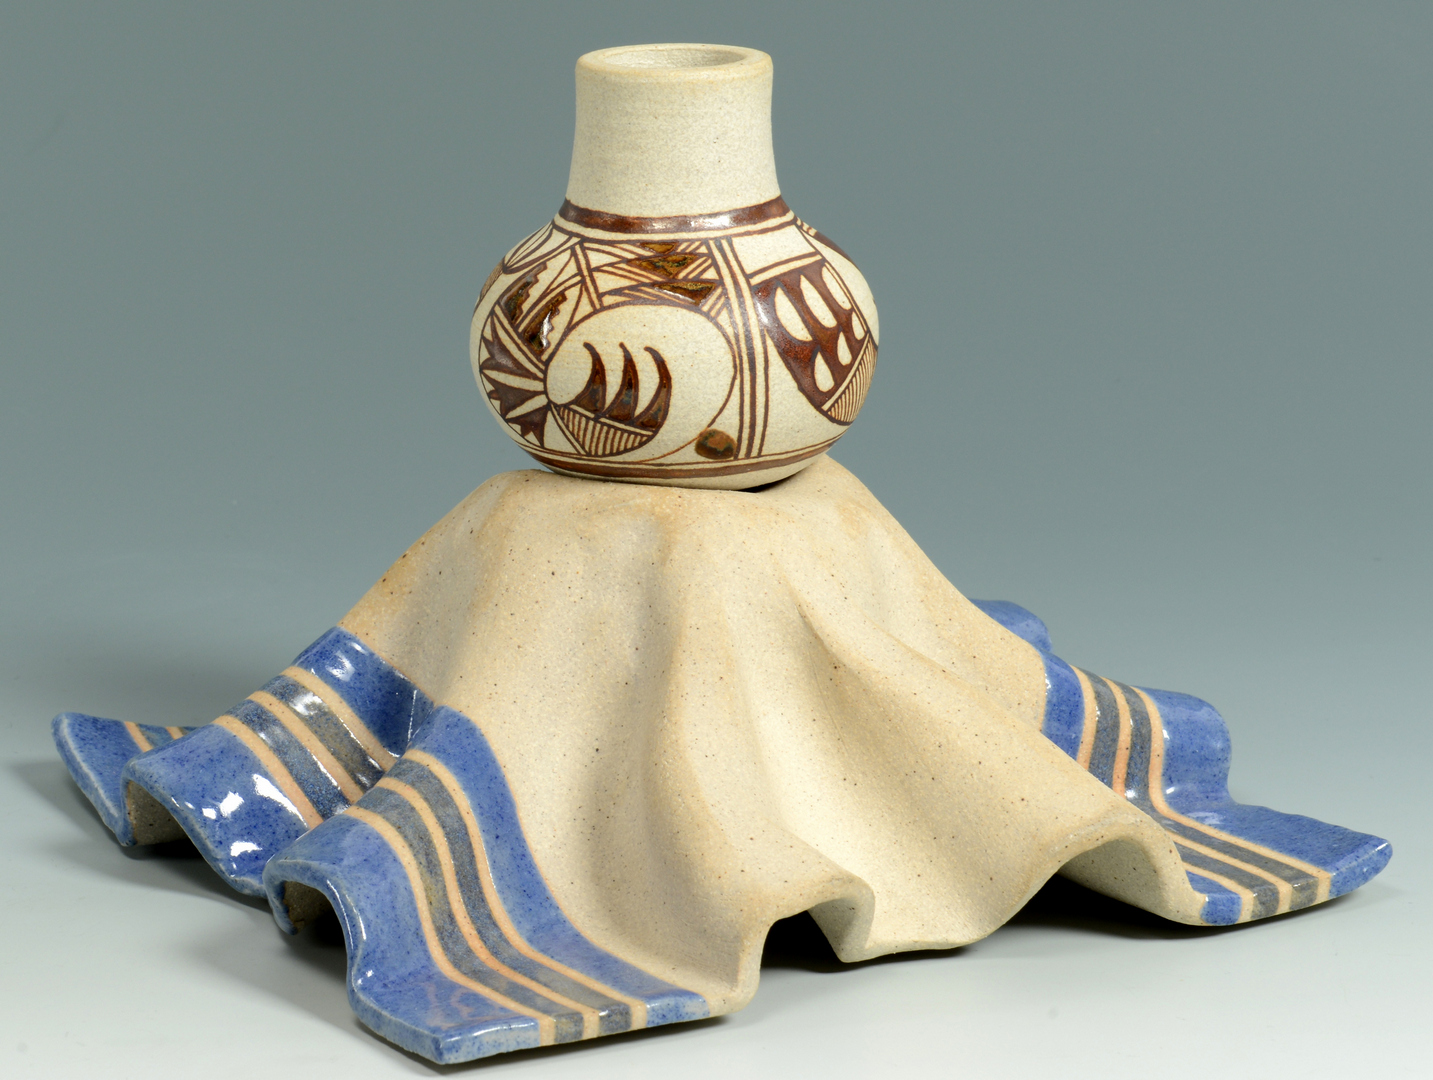 Lot 3088330: 2 Terry Slonaker Contemporary SW Pottery Items